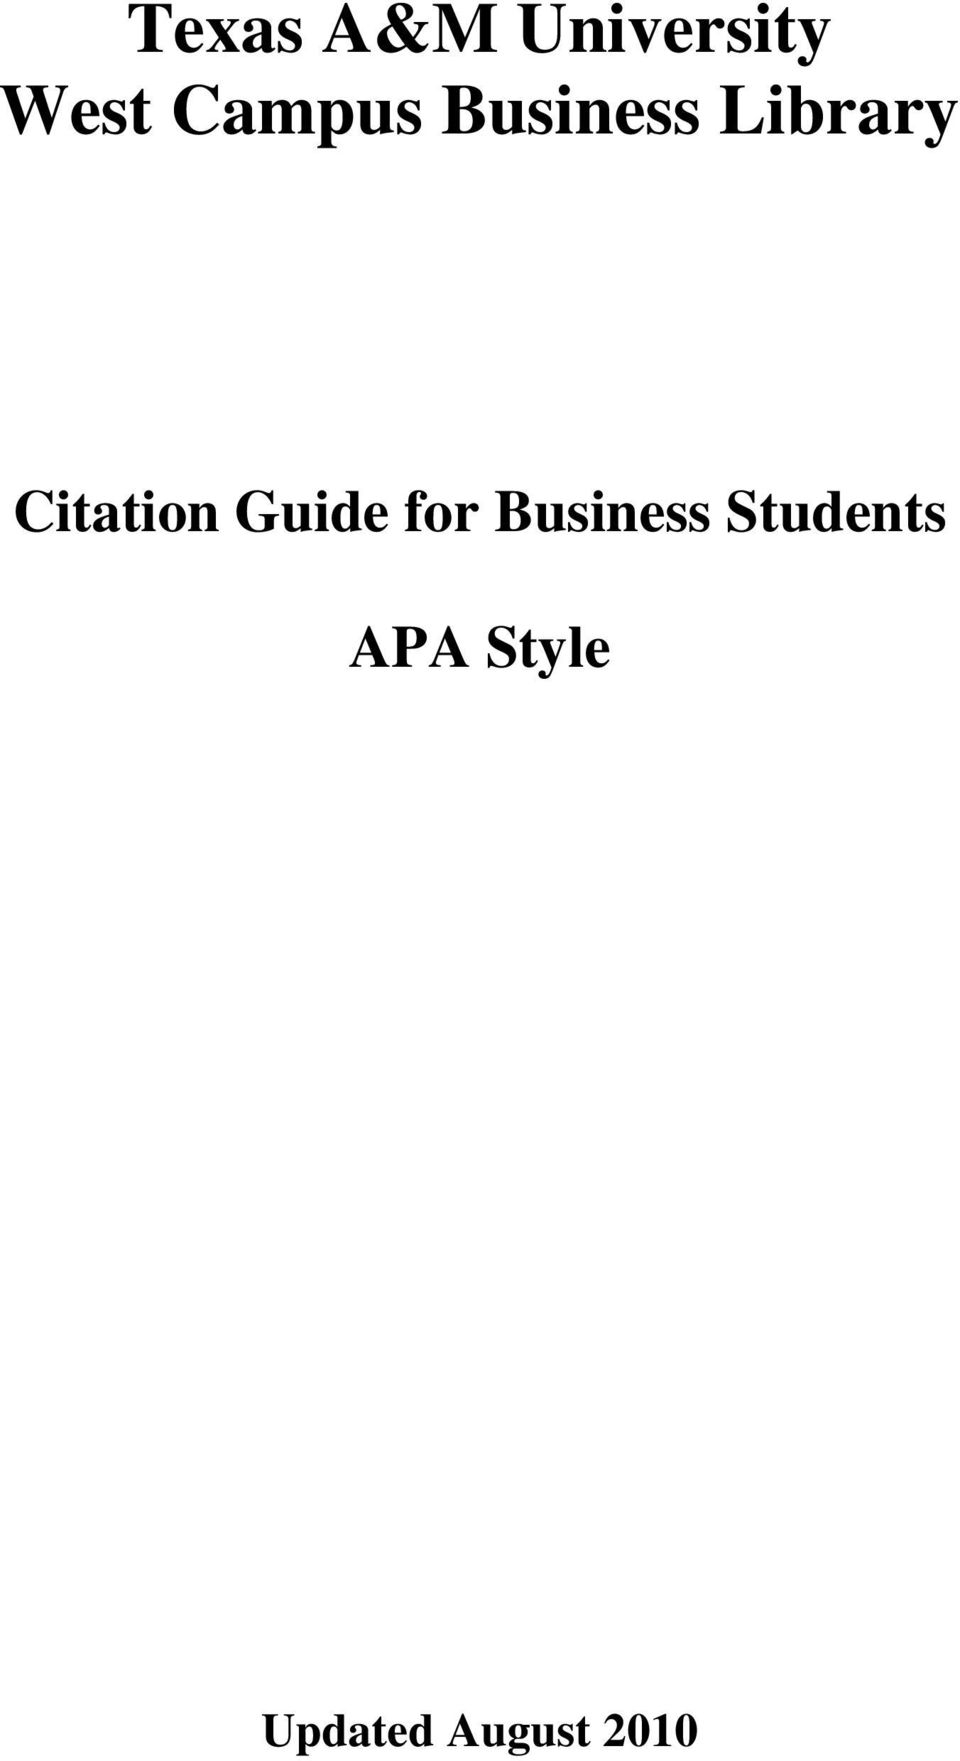 Citation Guide for